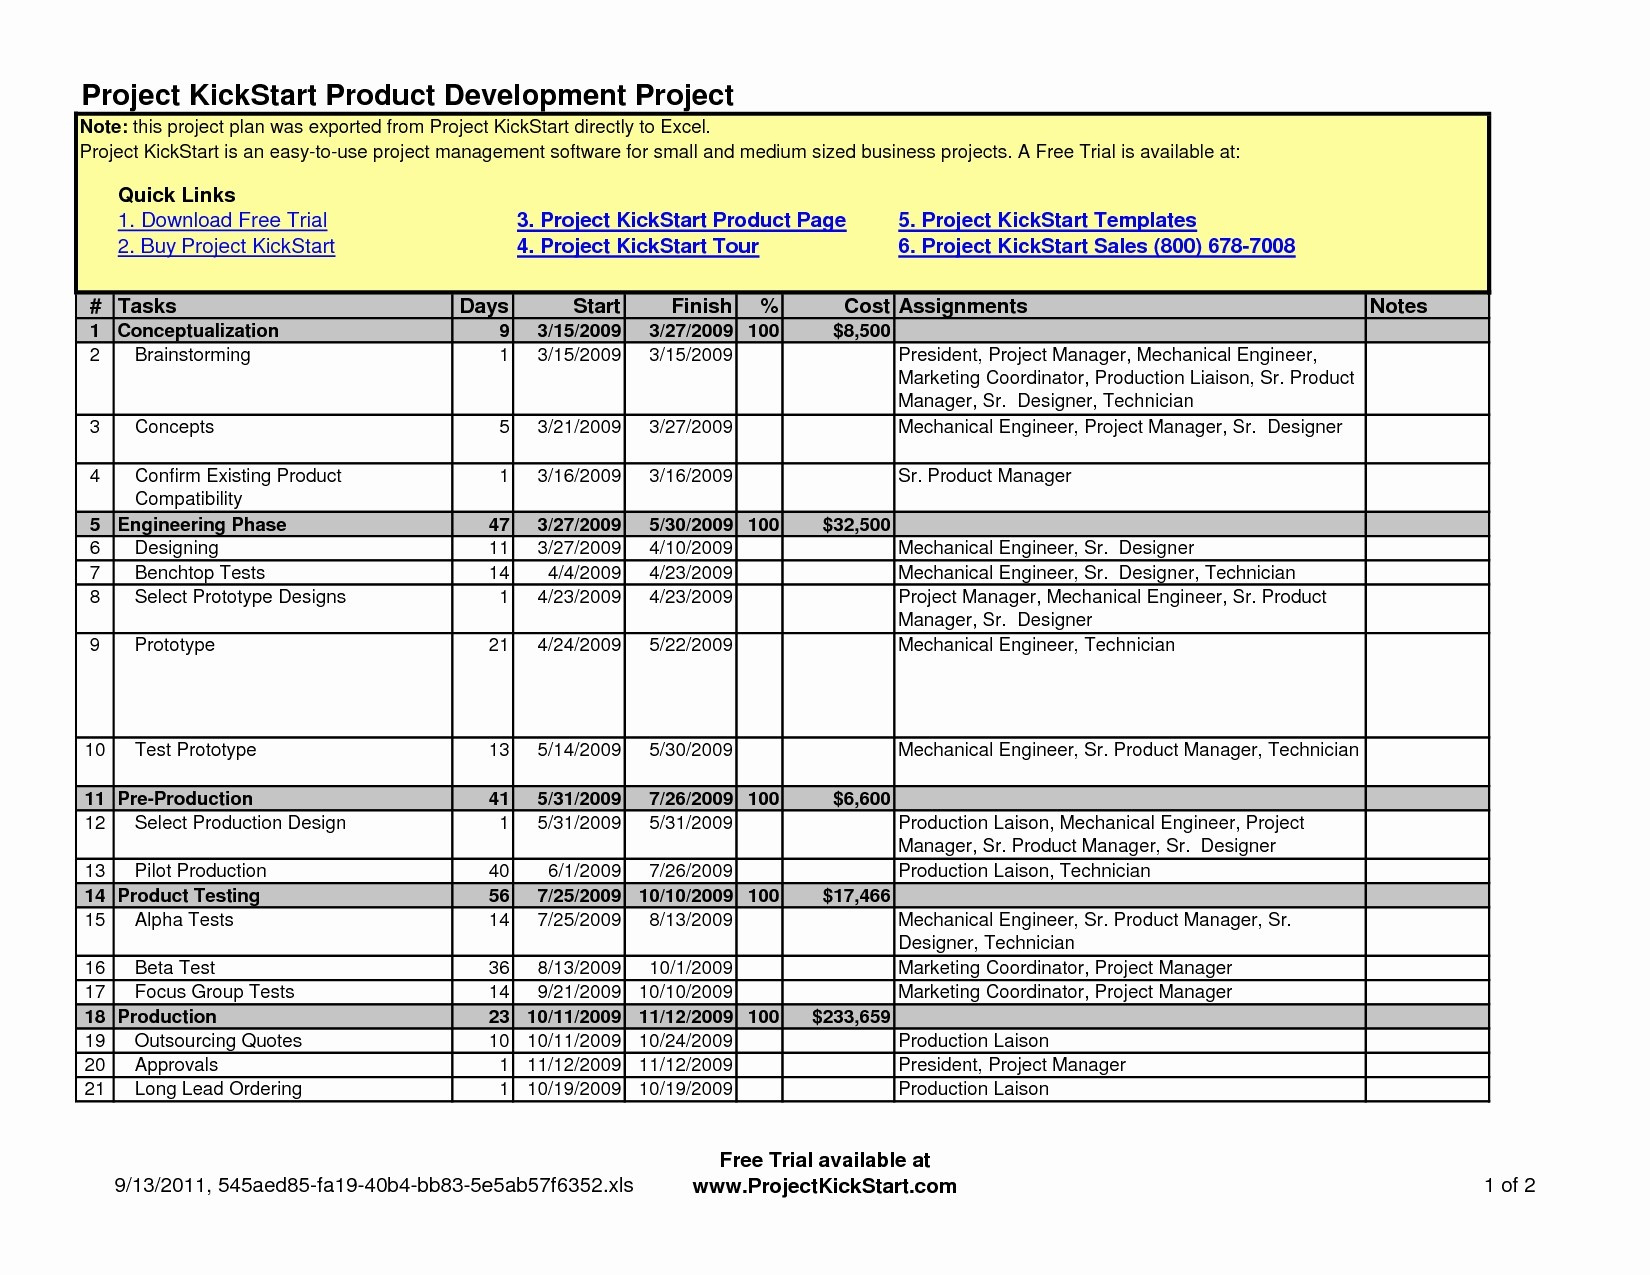 Project Planning Spreadsheet Template In Project Plan Spreadsheet Top Templates For Excel Smartsheet